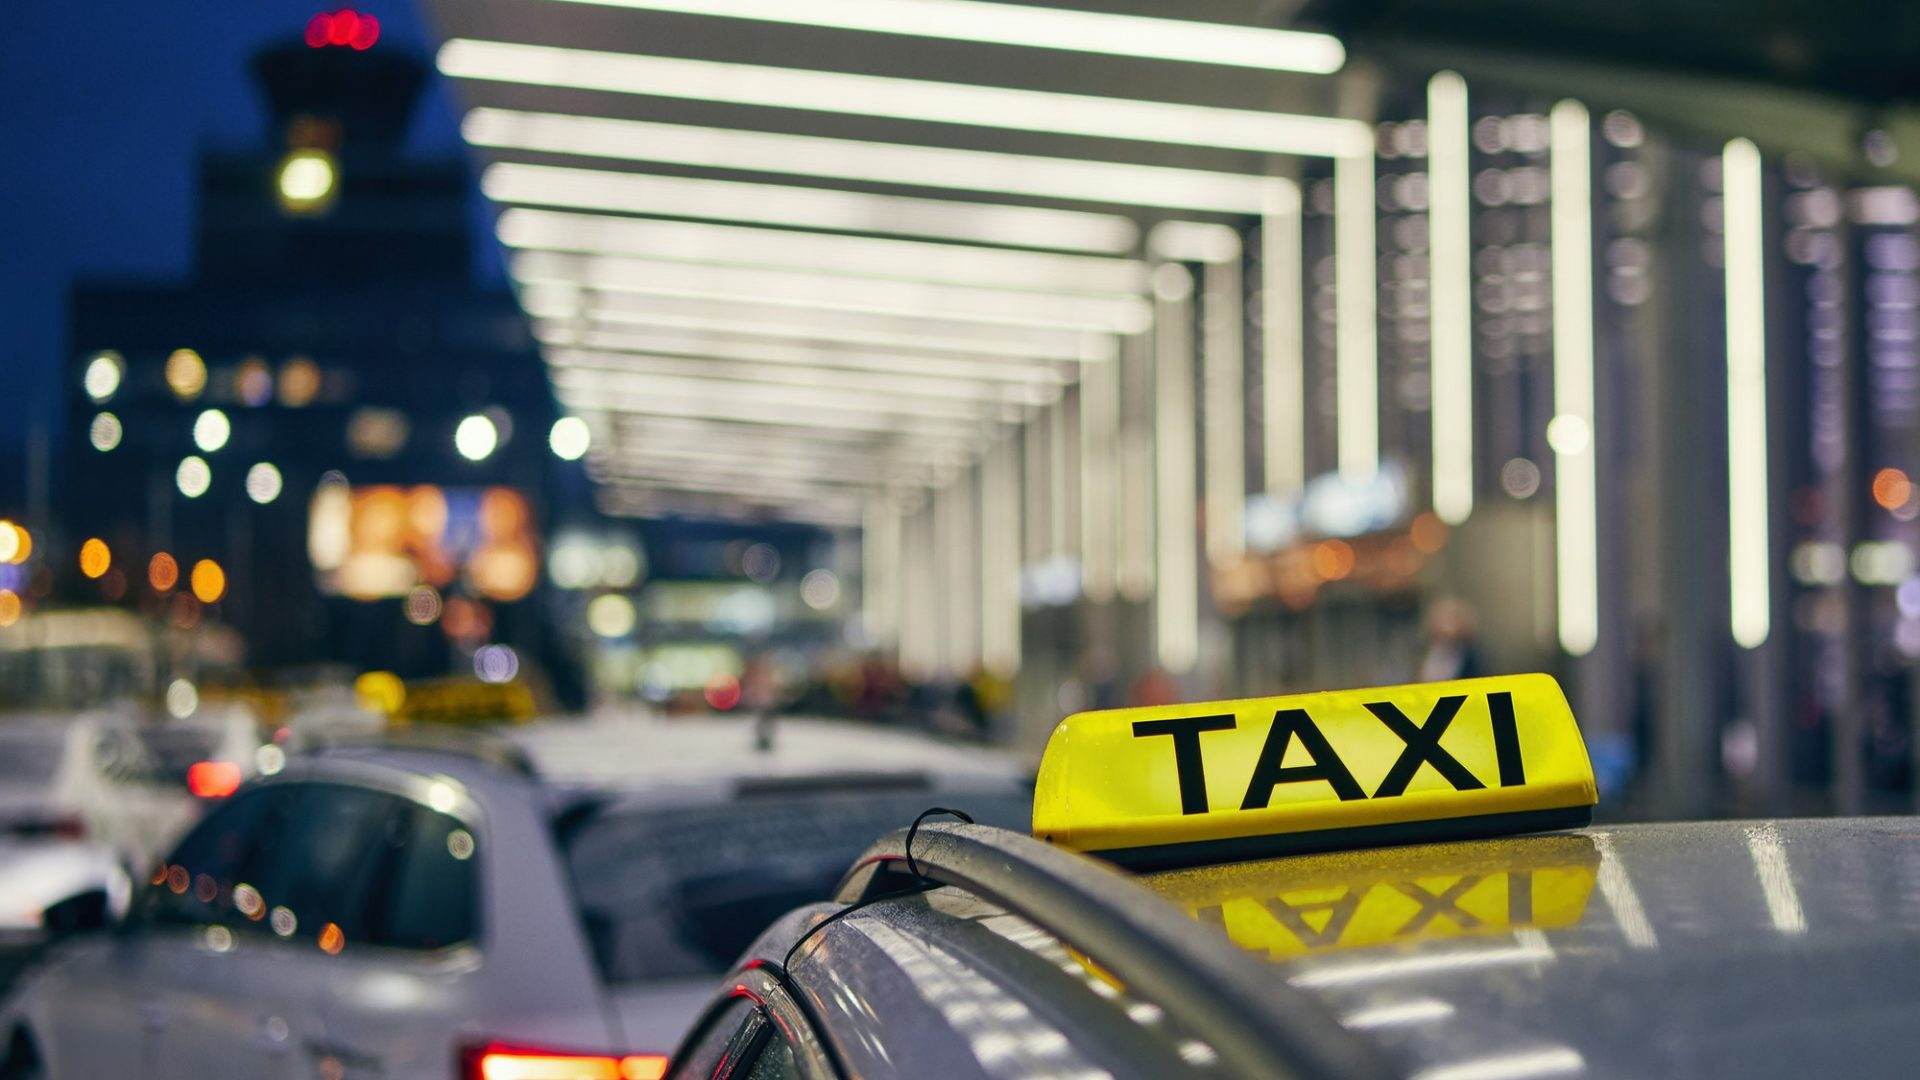 Lighting taxi sign